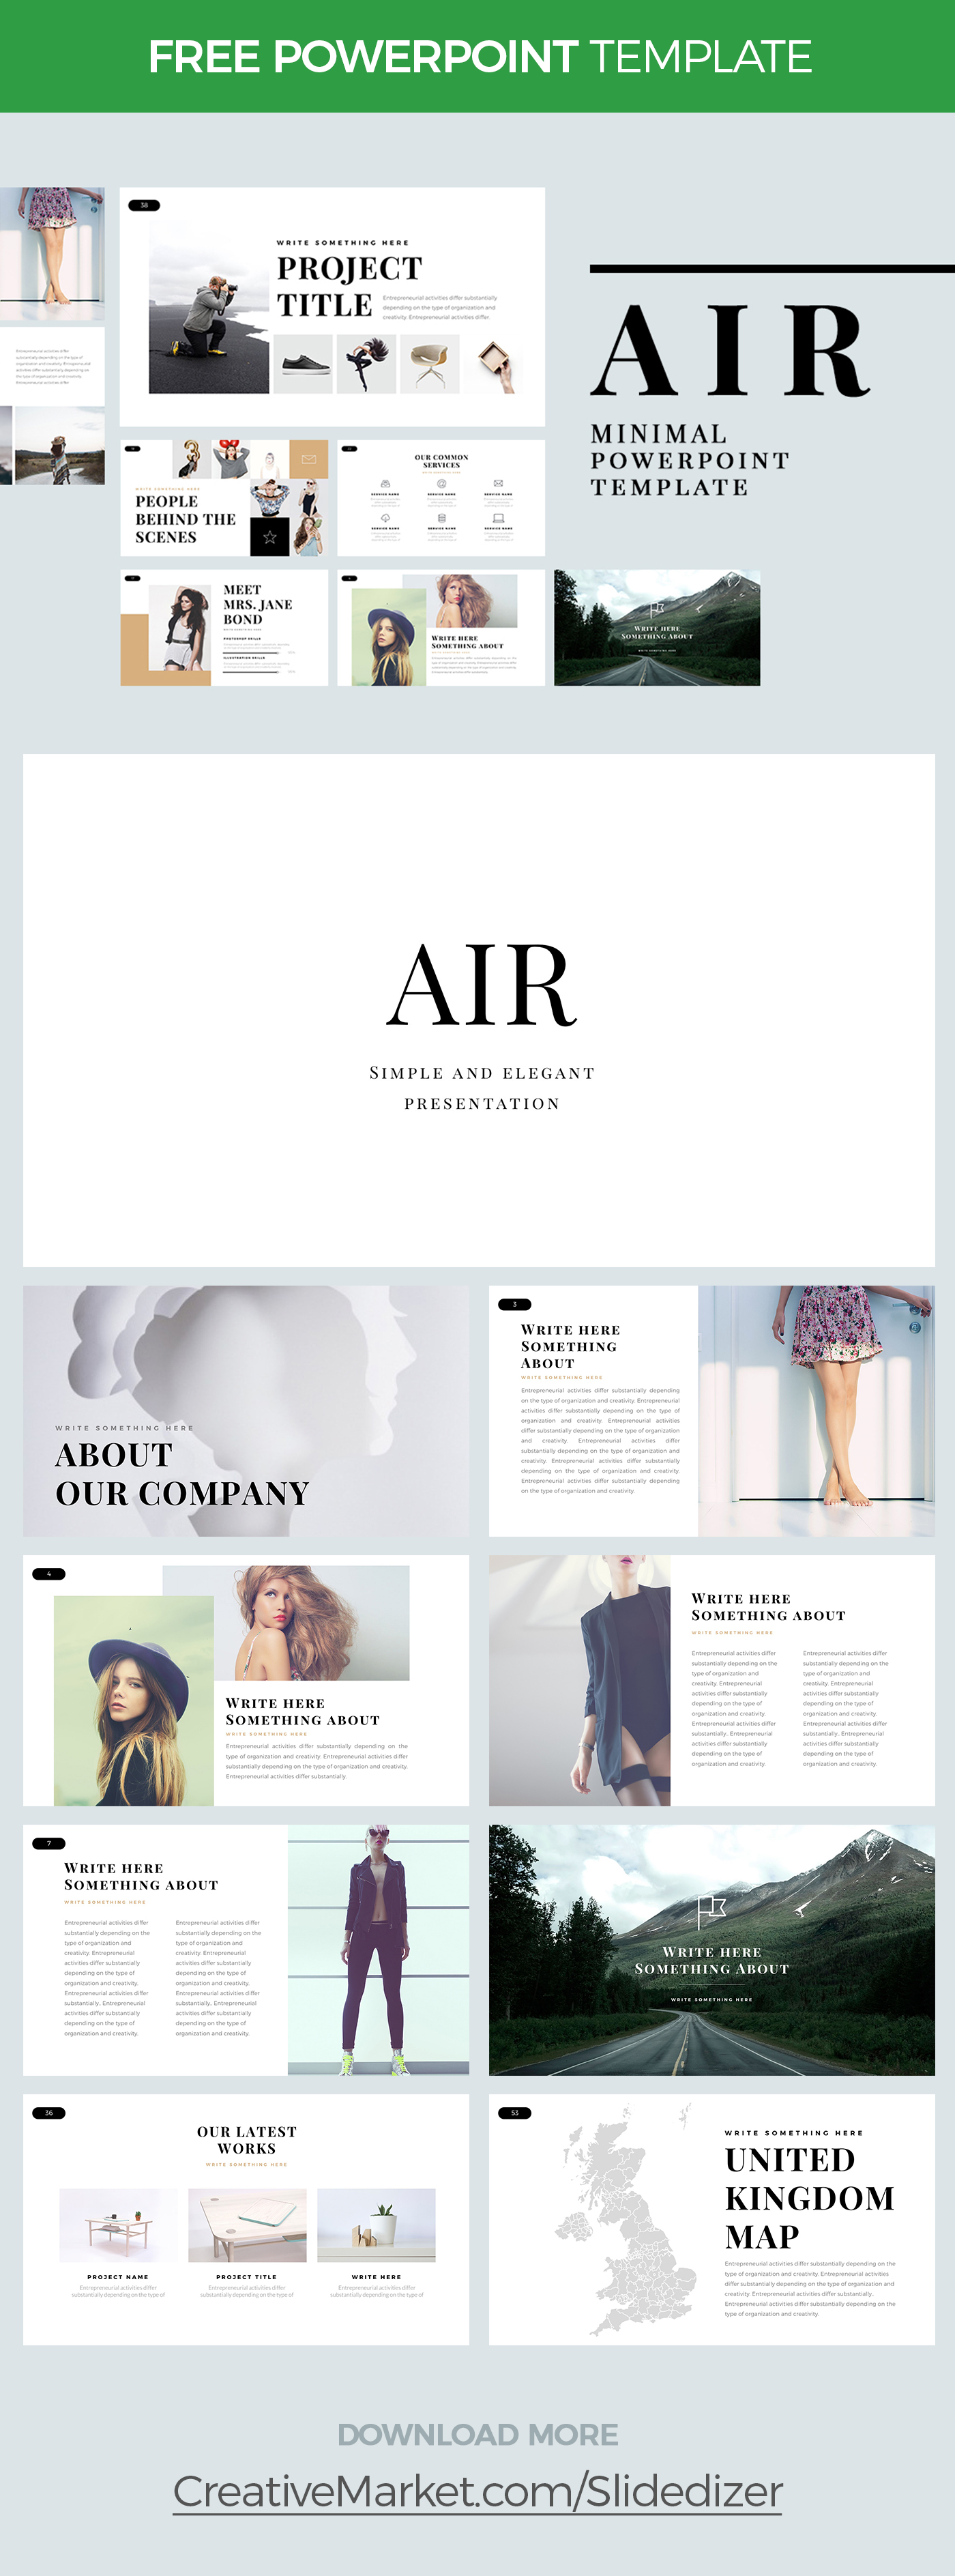 Minimal Powerpoint Template from images.squarespace-cdn.com